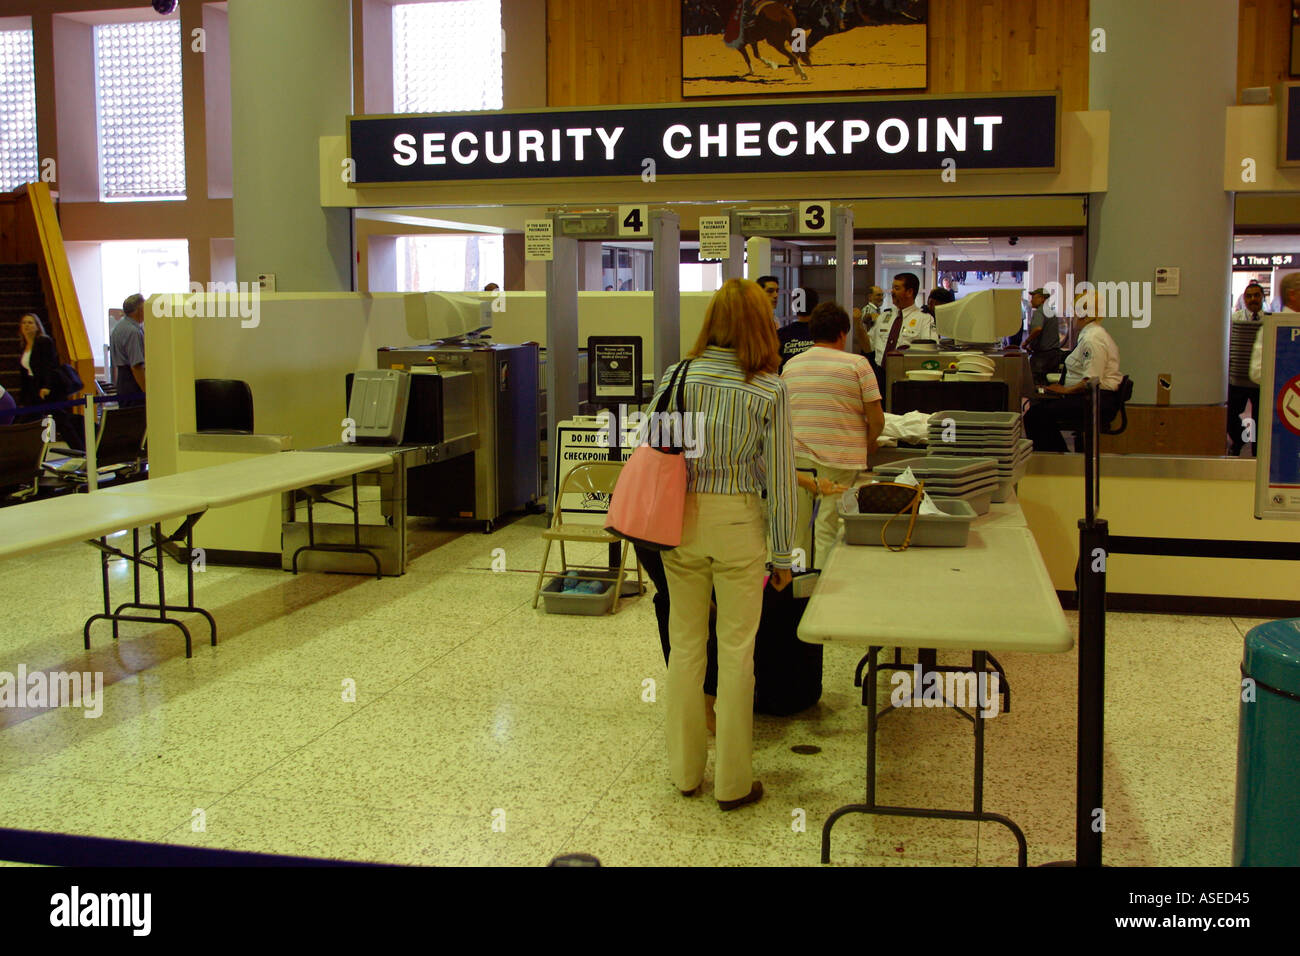 How to Pack for Airport Security